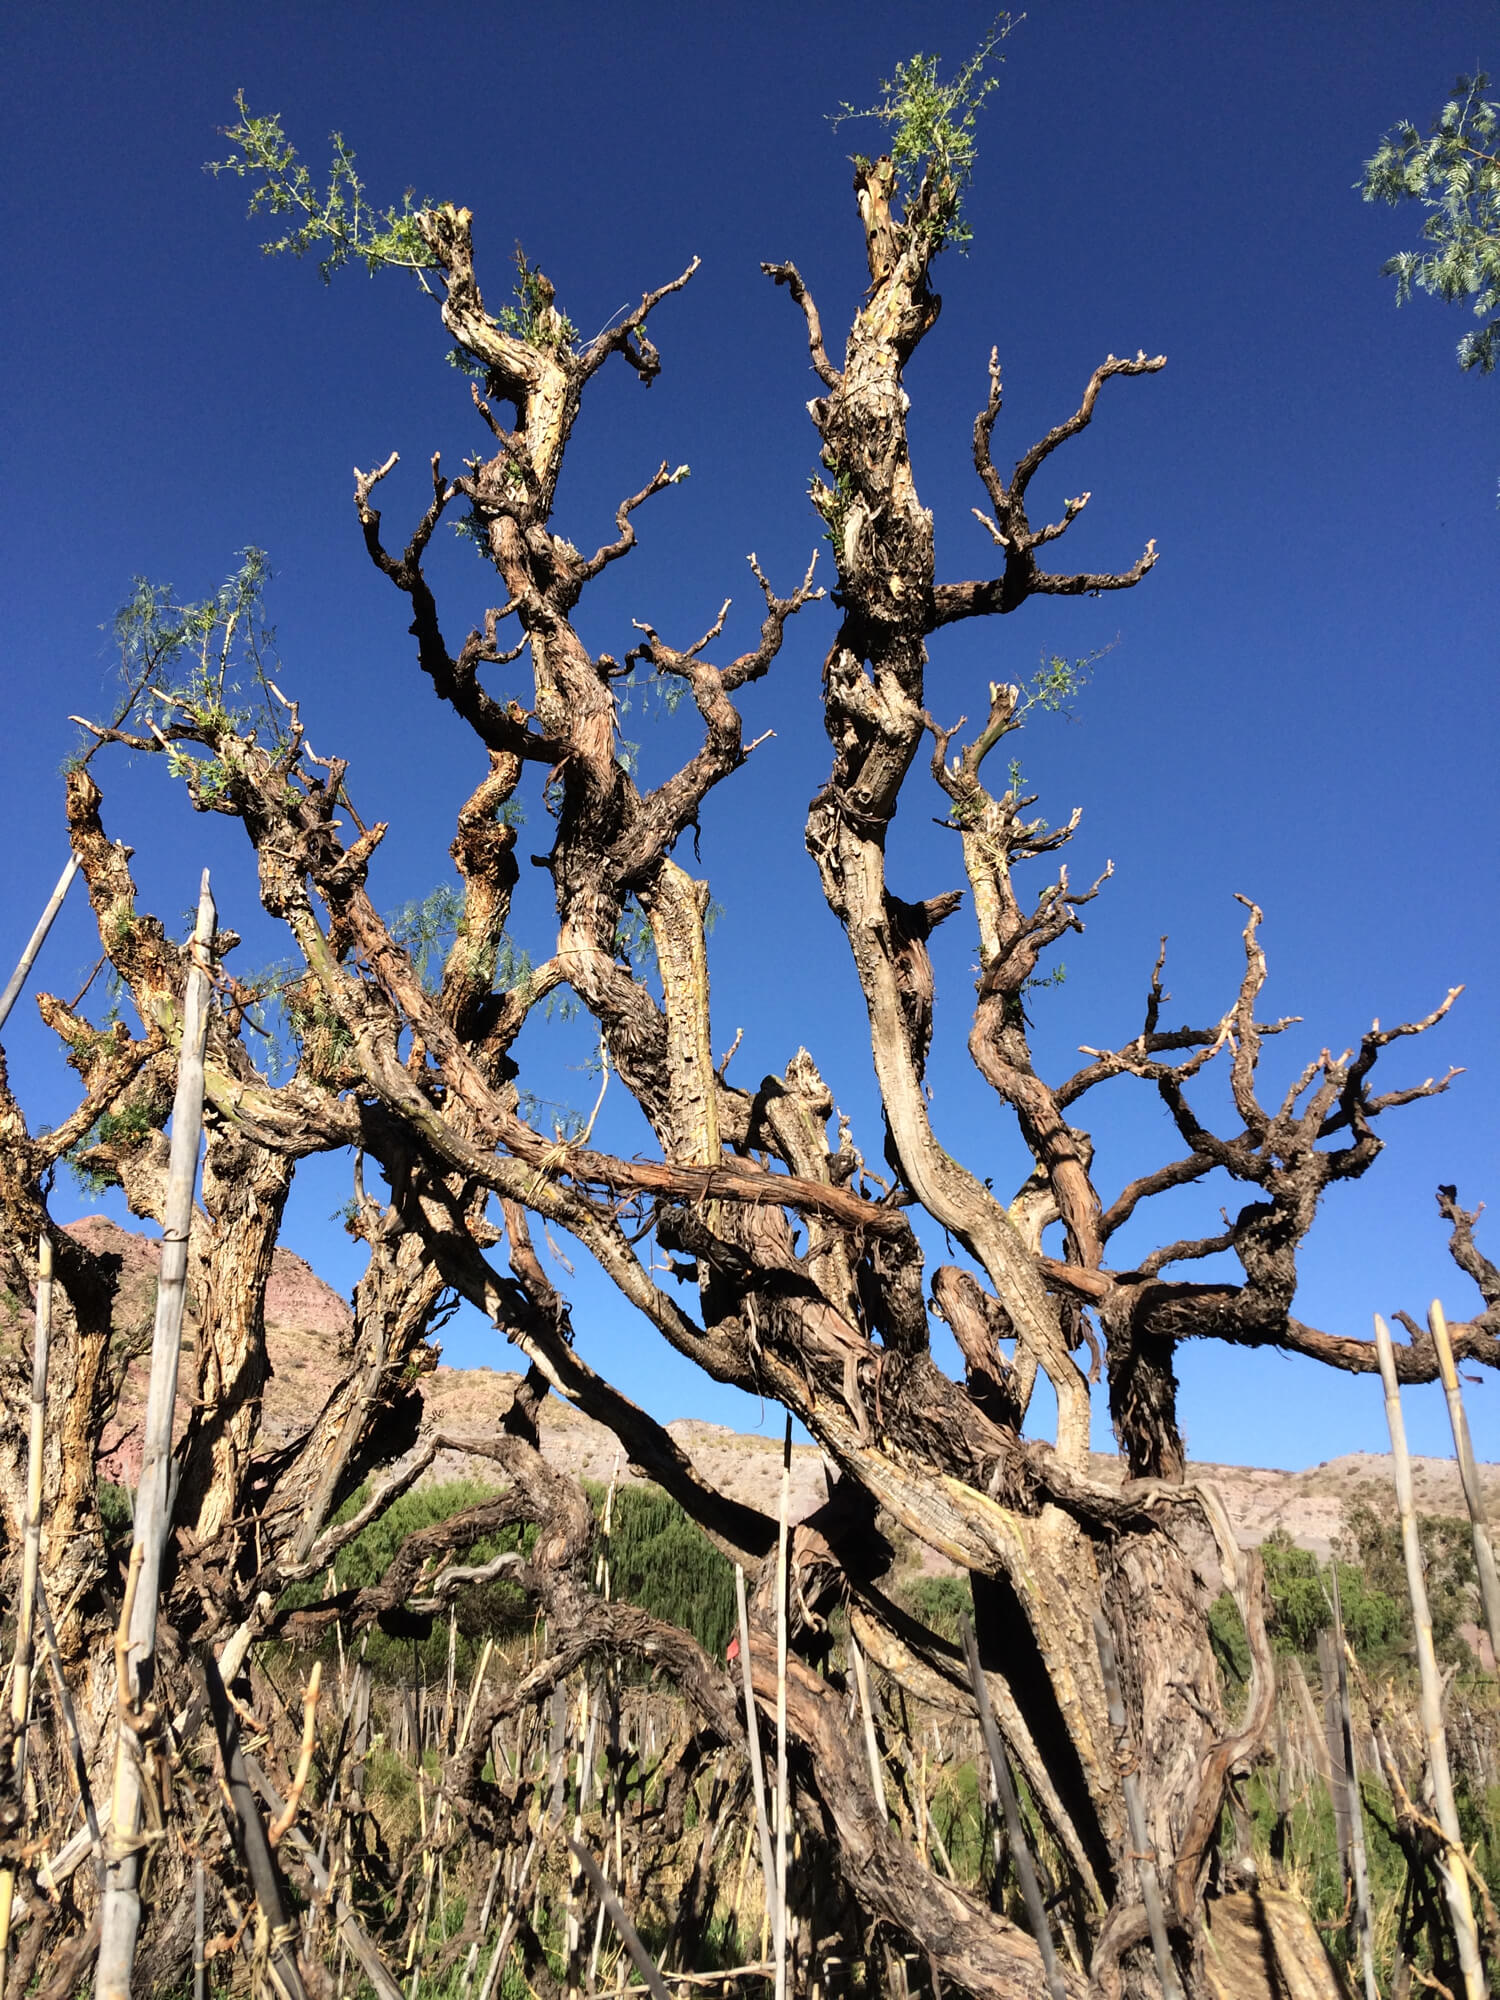 A 200 year old Muscat of Alexandria vine trained up a Molle Tree in the Cinti Valley at the end of the winter season. The vine has grown so thick that it can be difficult to distinguish the two.